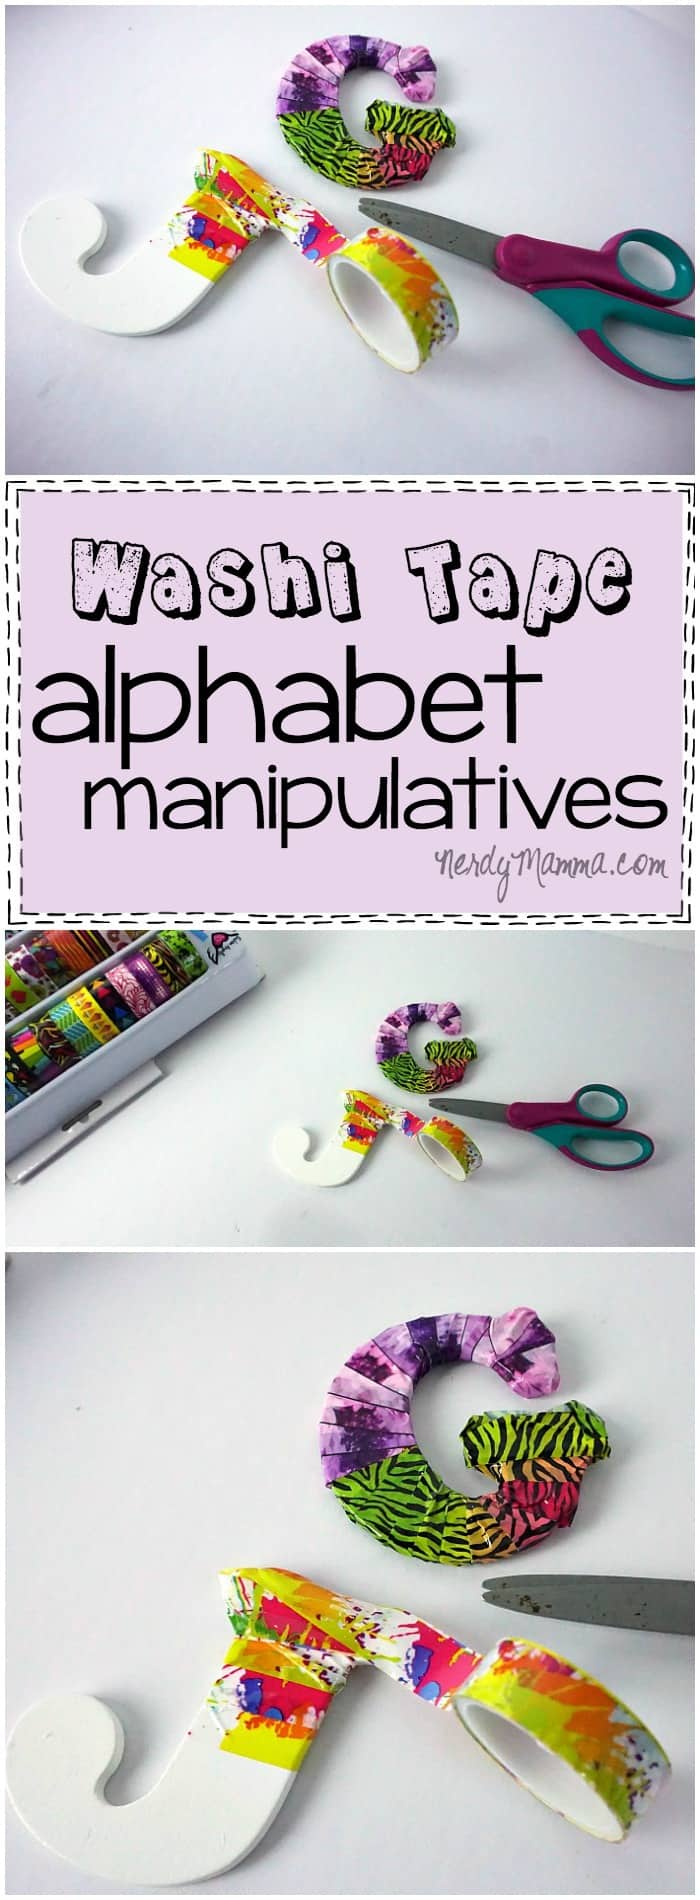 I love this idea for making alphabet manipulatives! So easy and fun!